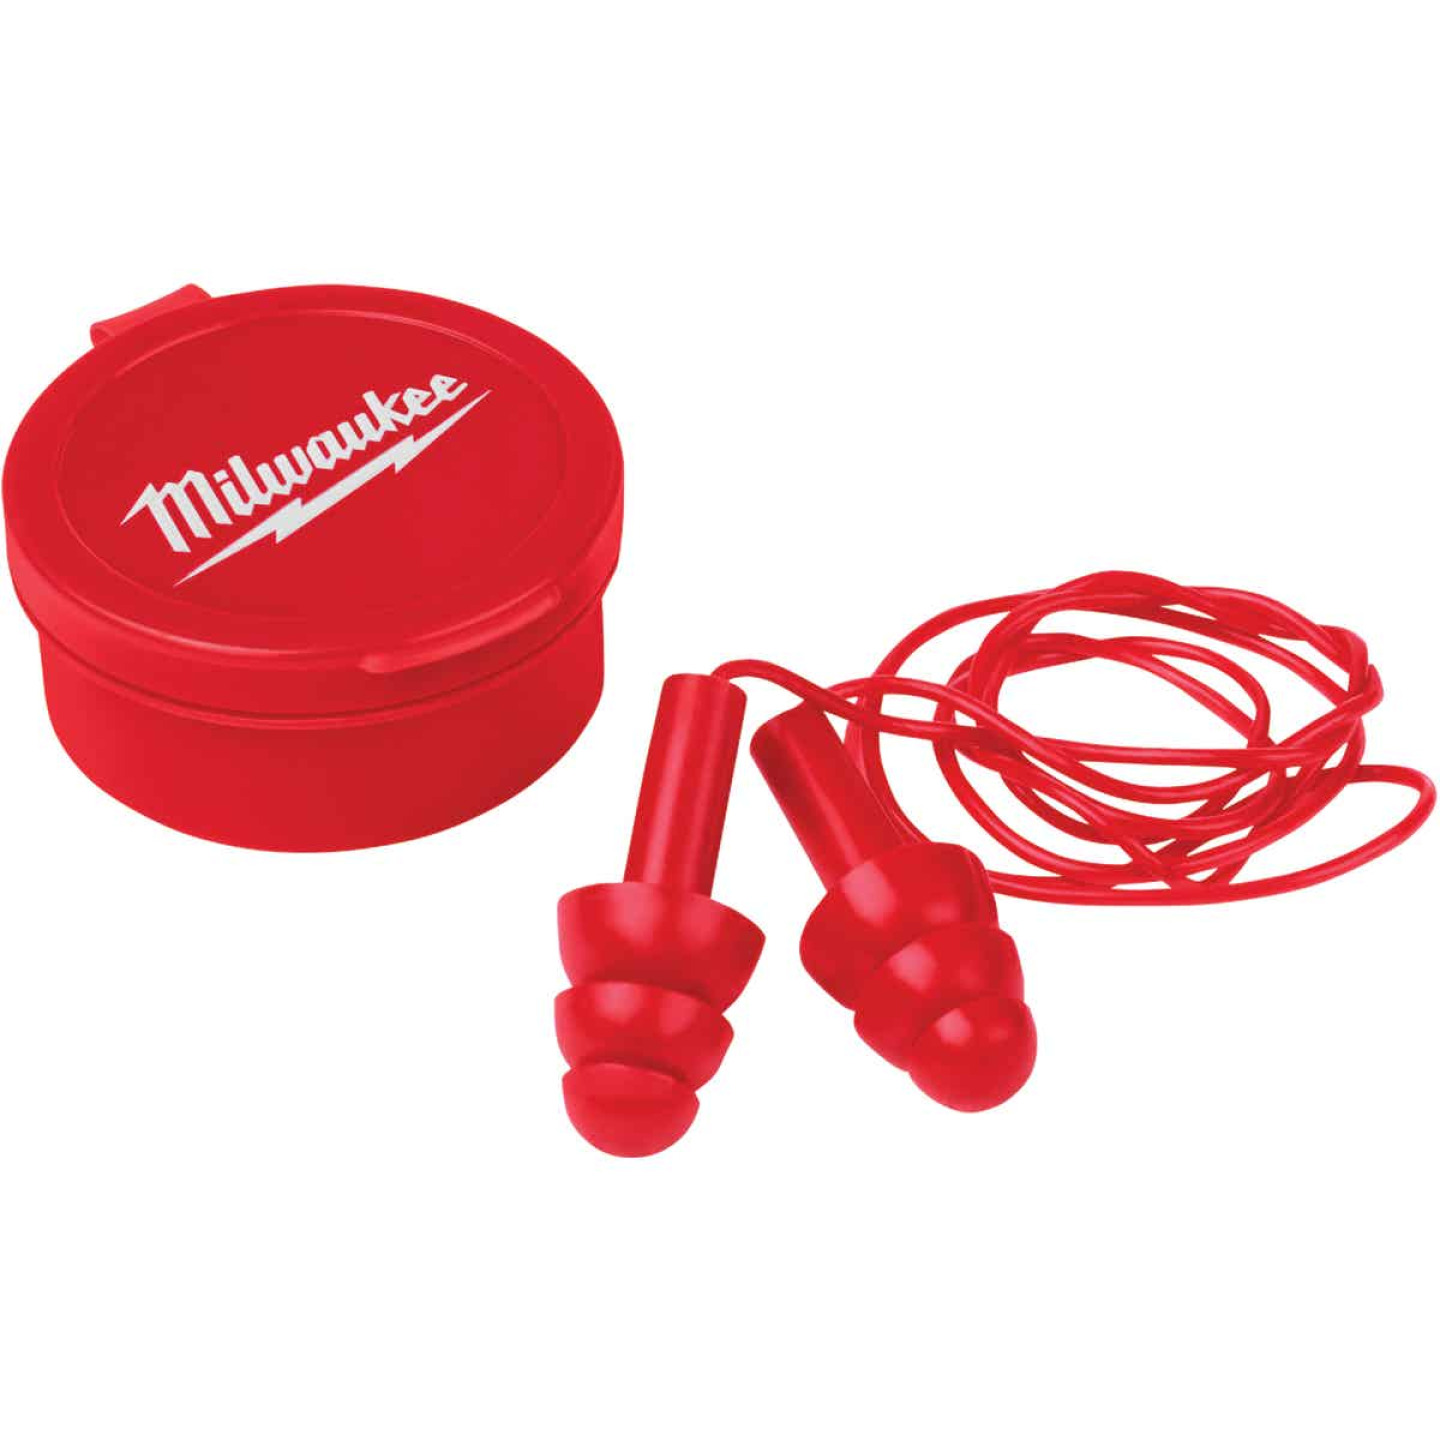 Milwaukee Silicone 26 dB Corded Ear Plugs (3-Pair) Image 1